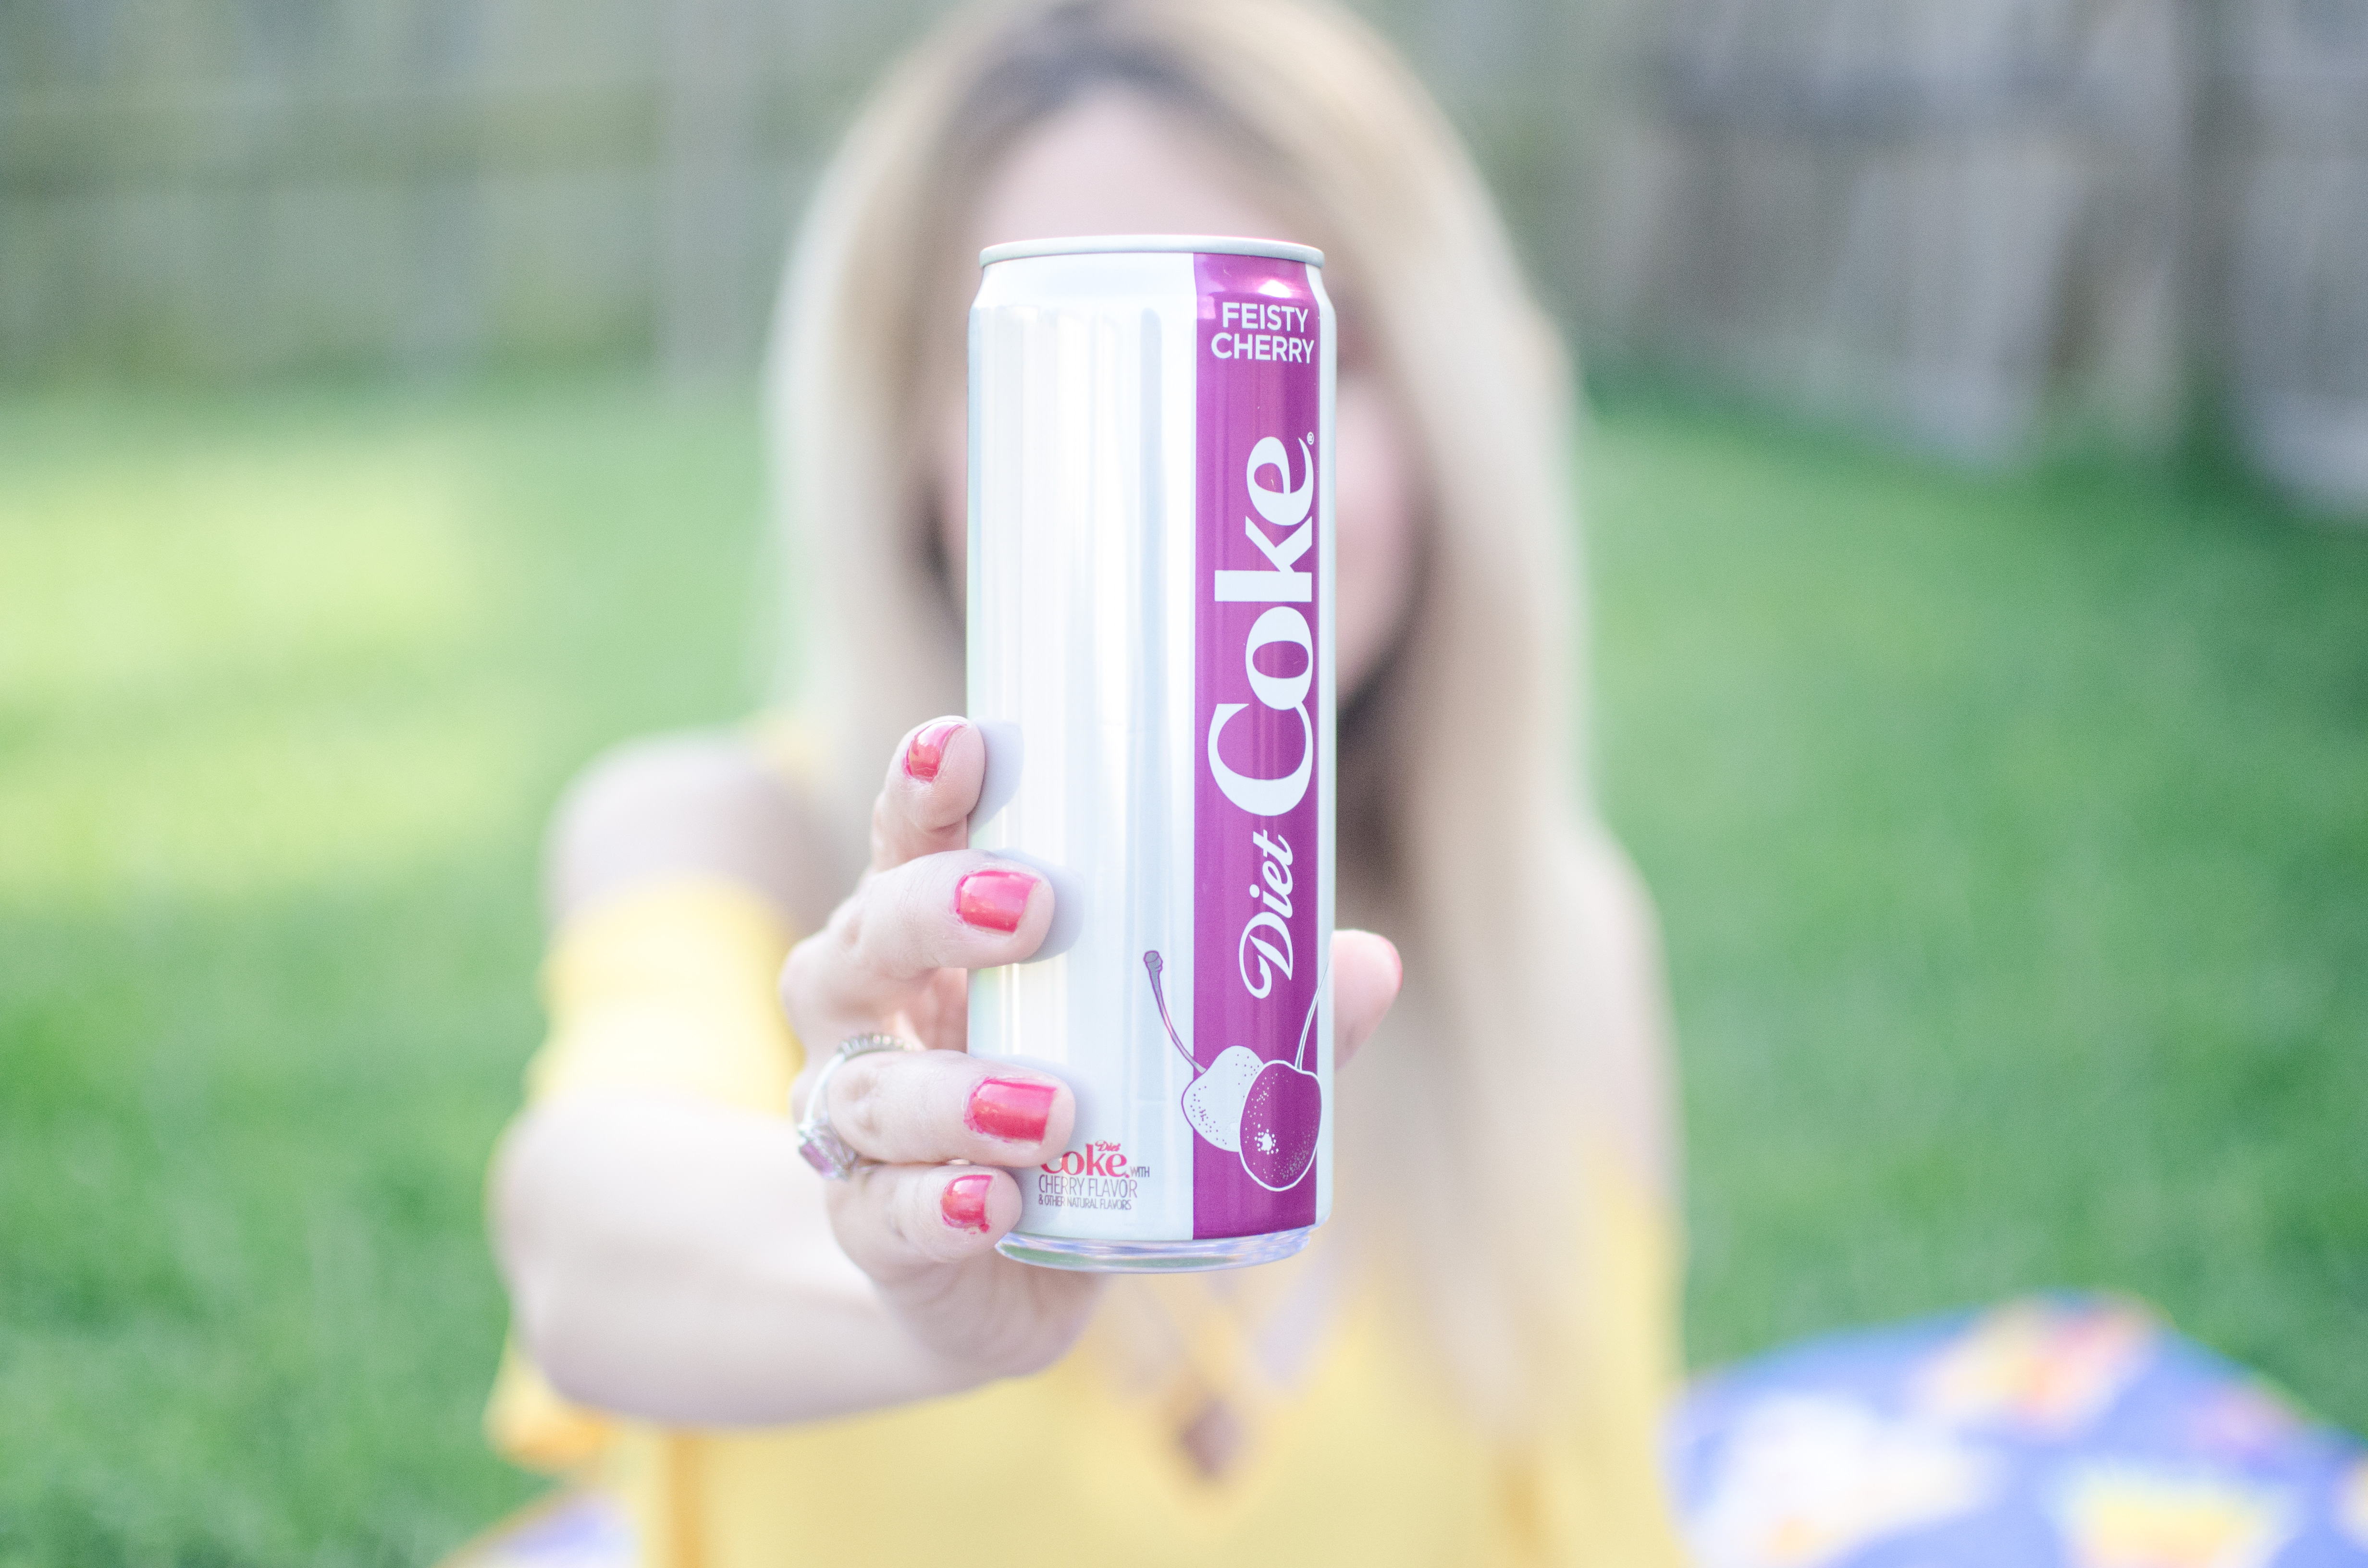 #ad If you truly know me, then you'll know that Diet Coke® is my drink of choice. Of course, I was excited after seeing the new flavors of Diet Coke at Target. That got me thinking – they did something completely different and likely stepped out of their comfort zone. If they can, why can't you? What's your excuse? #BecauseICan #BecauseFlavorYourLife #CollectiveBias